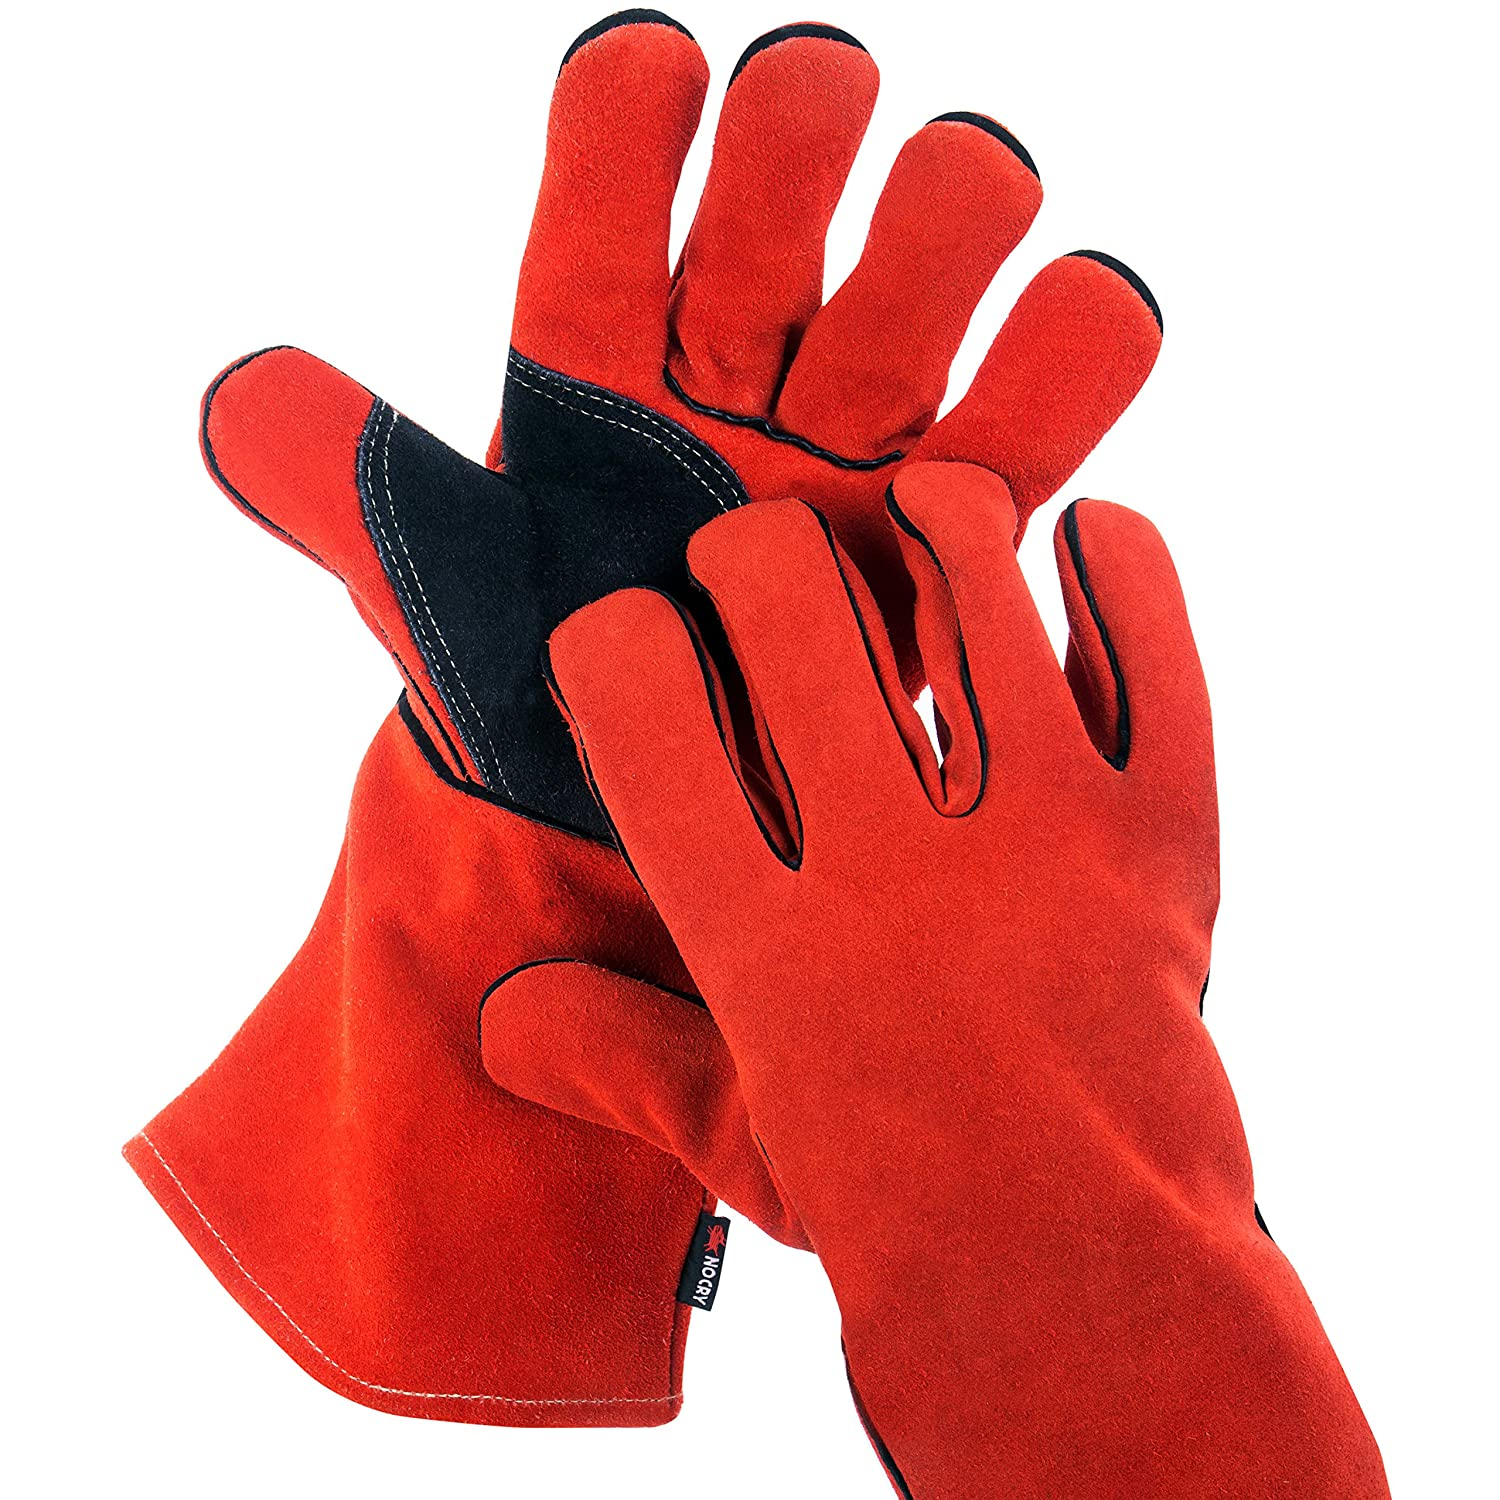 NoCry Heavy Duty Heat Resistant Flame Retardant Welding BBQ Gloves Premium Cowhide Leather Long 14 inch Forearm Protection. Red Size Large